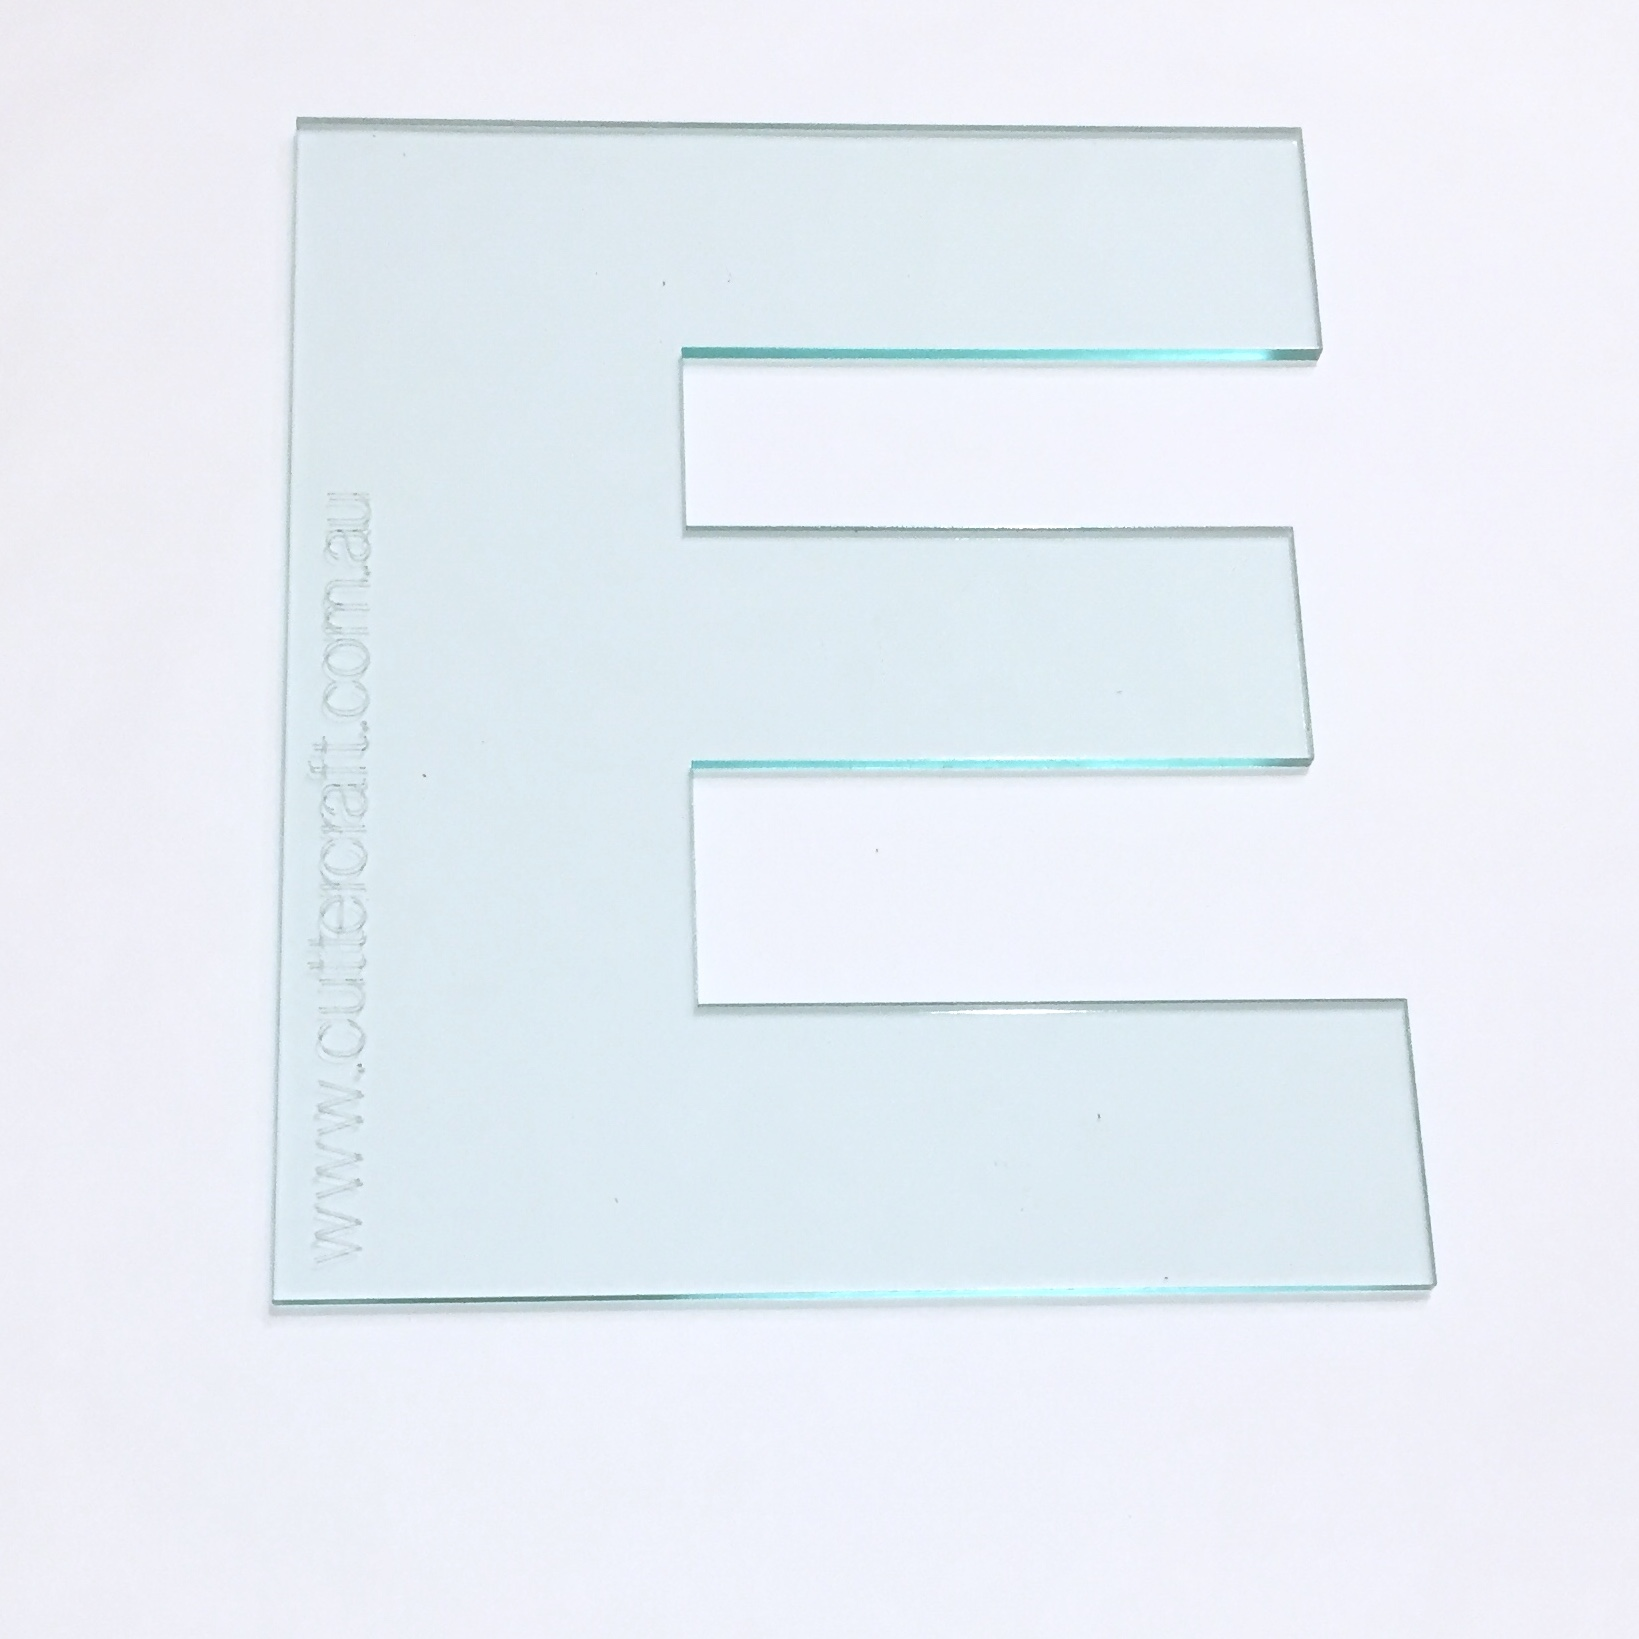 Letter e acrylic large template 29cm high wide font cuttercraft zoom spiritdancerdesigns Image collections